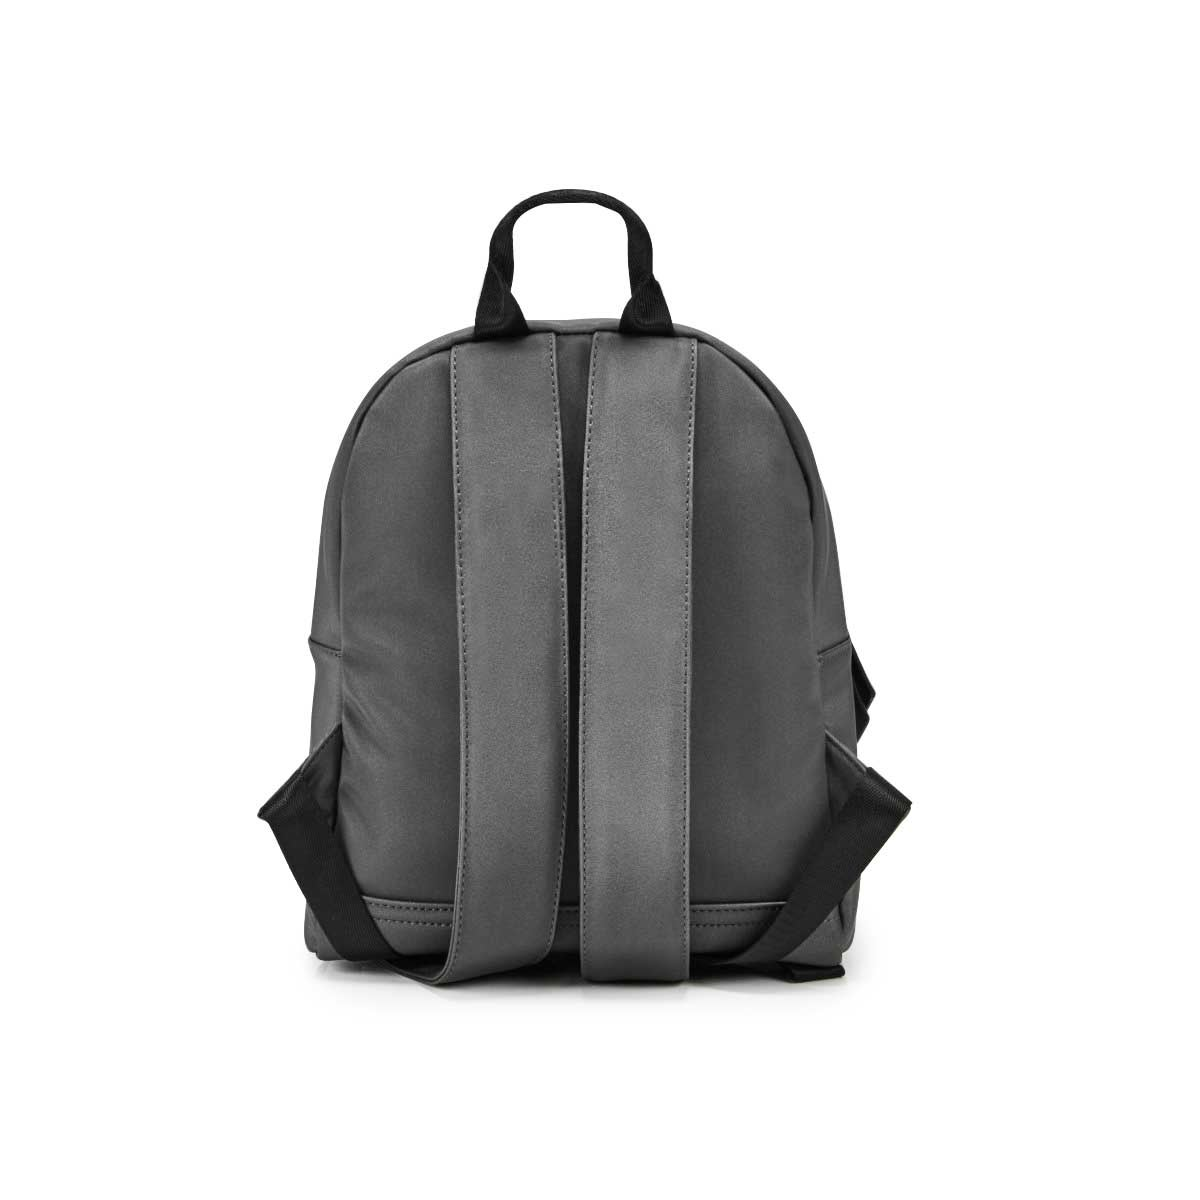 Lds Roots73 charcoal mini backpack